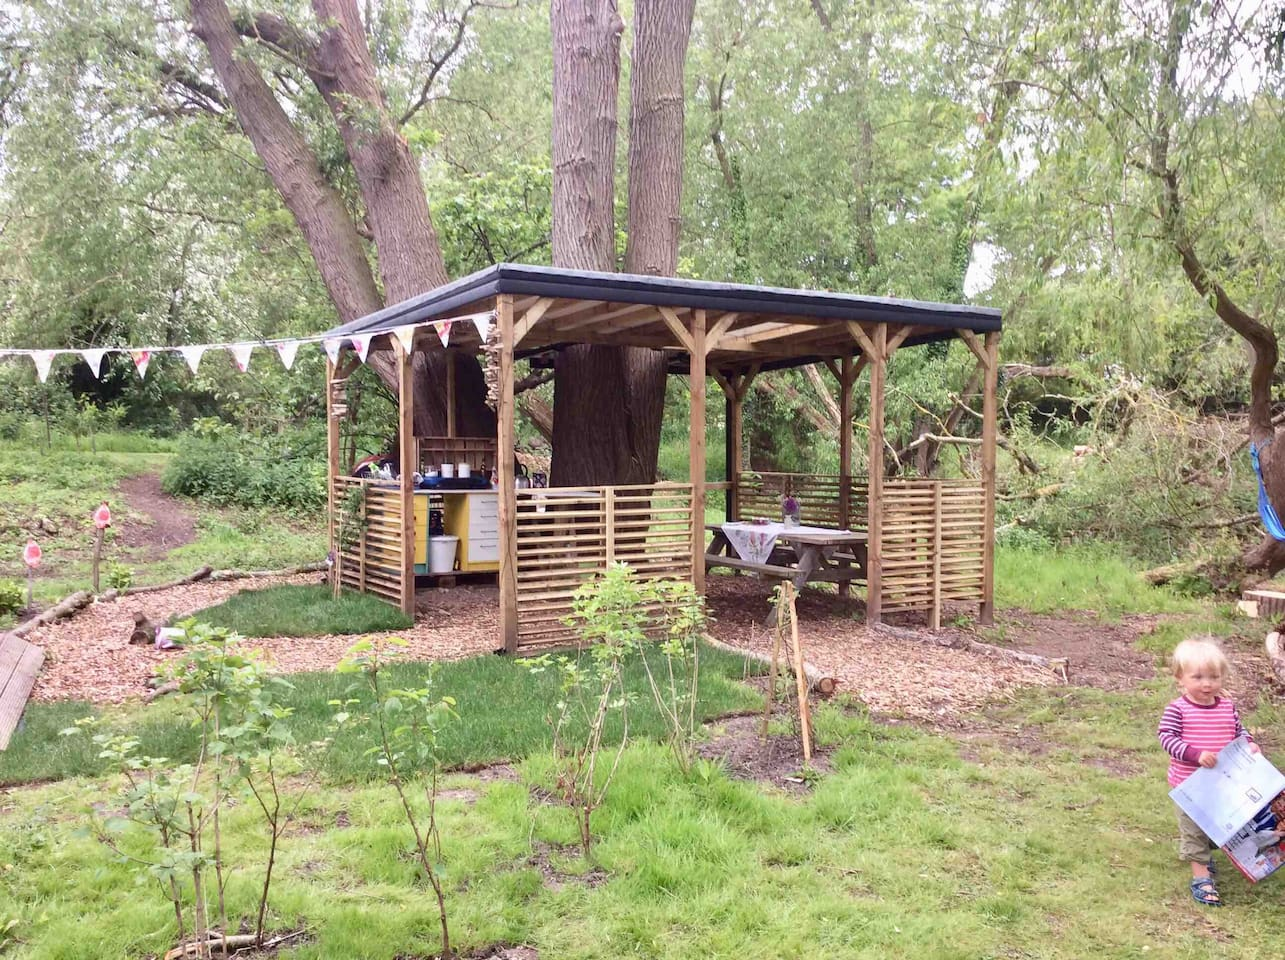 Willow cooking and eating area.